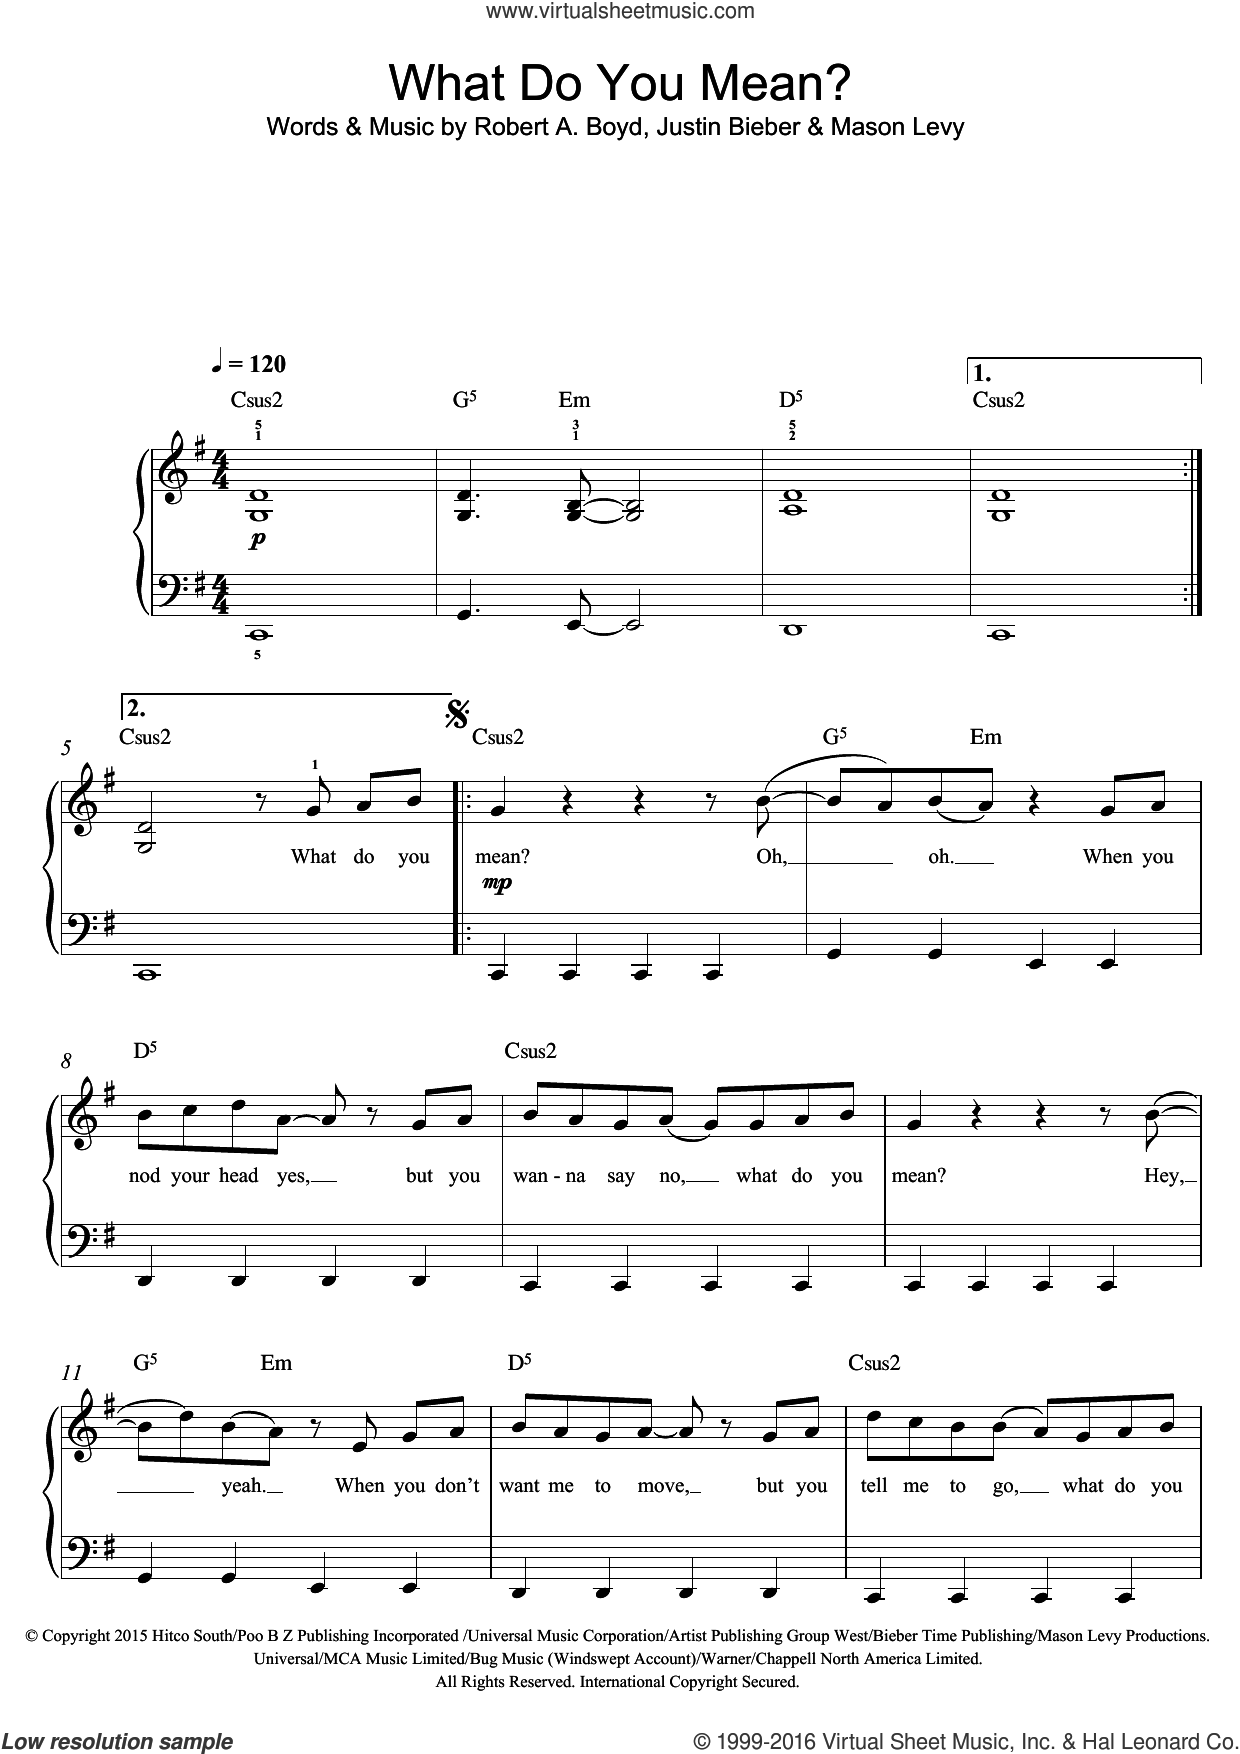 What Do You Mean? sheet music for voice, piano or guitar by Justin Bieber, Mason Levy and Robert A. Boyd, intermediate skill level